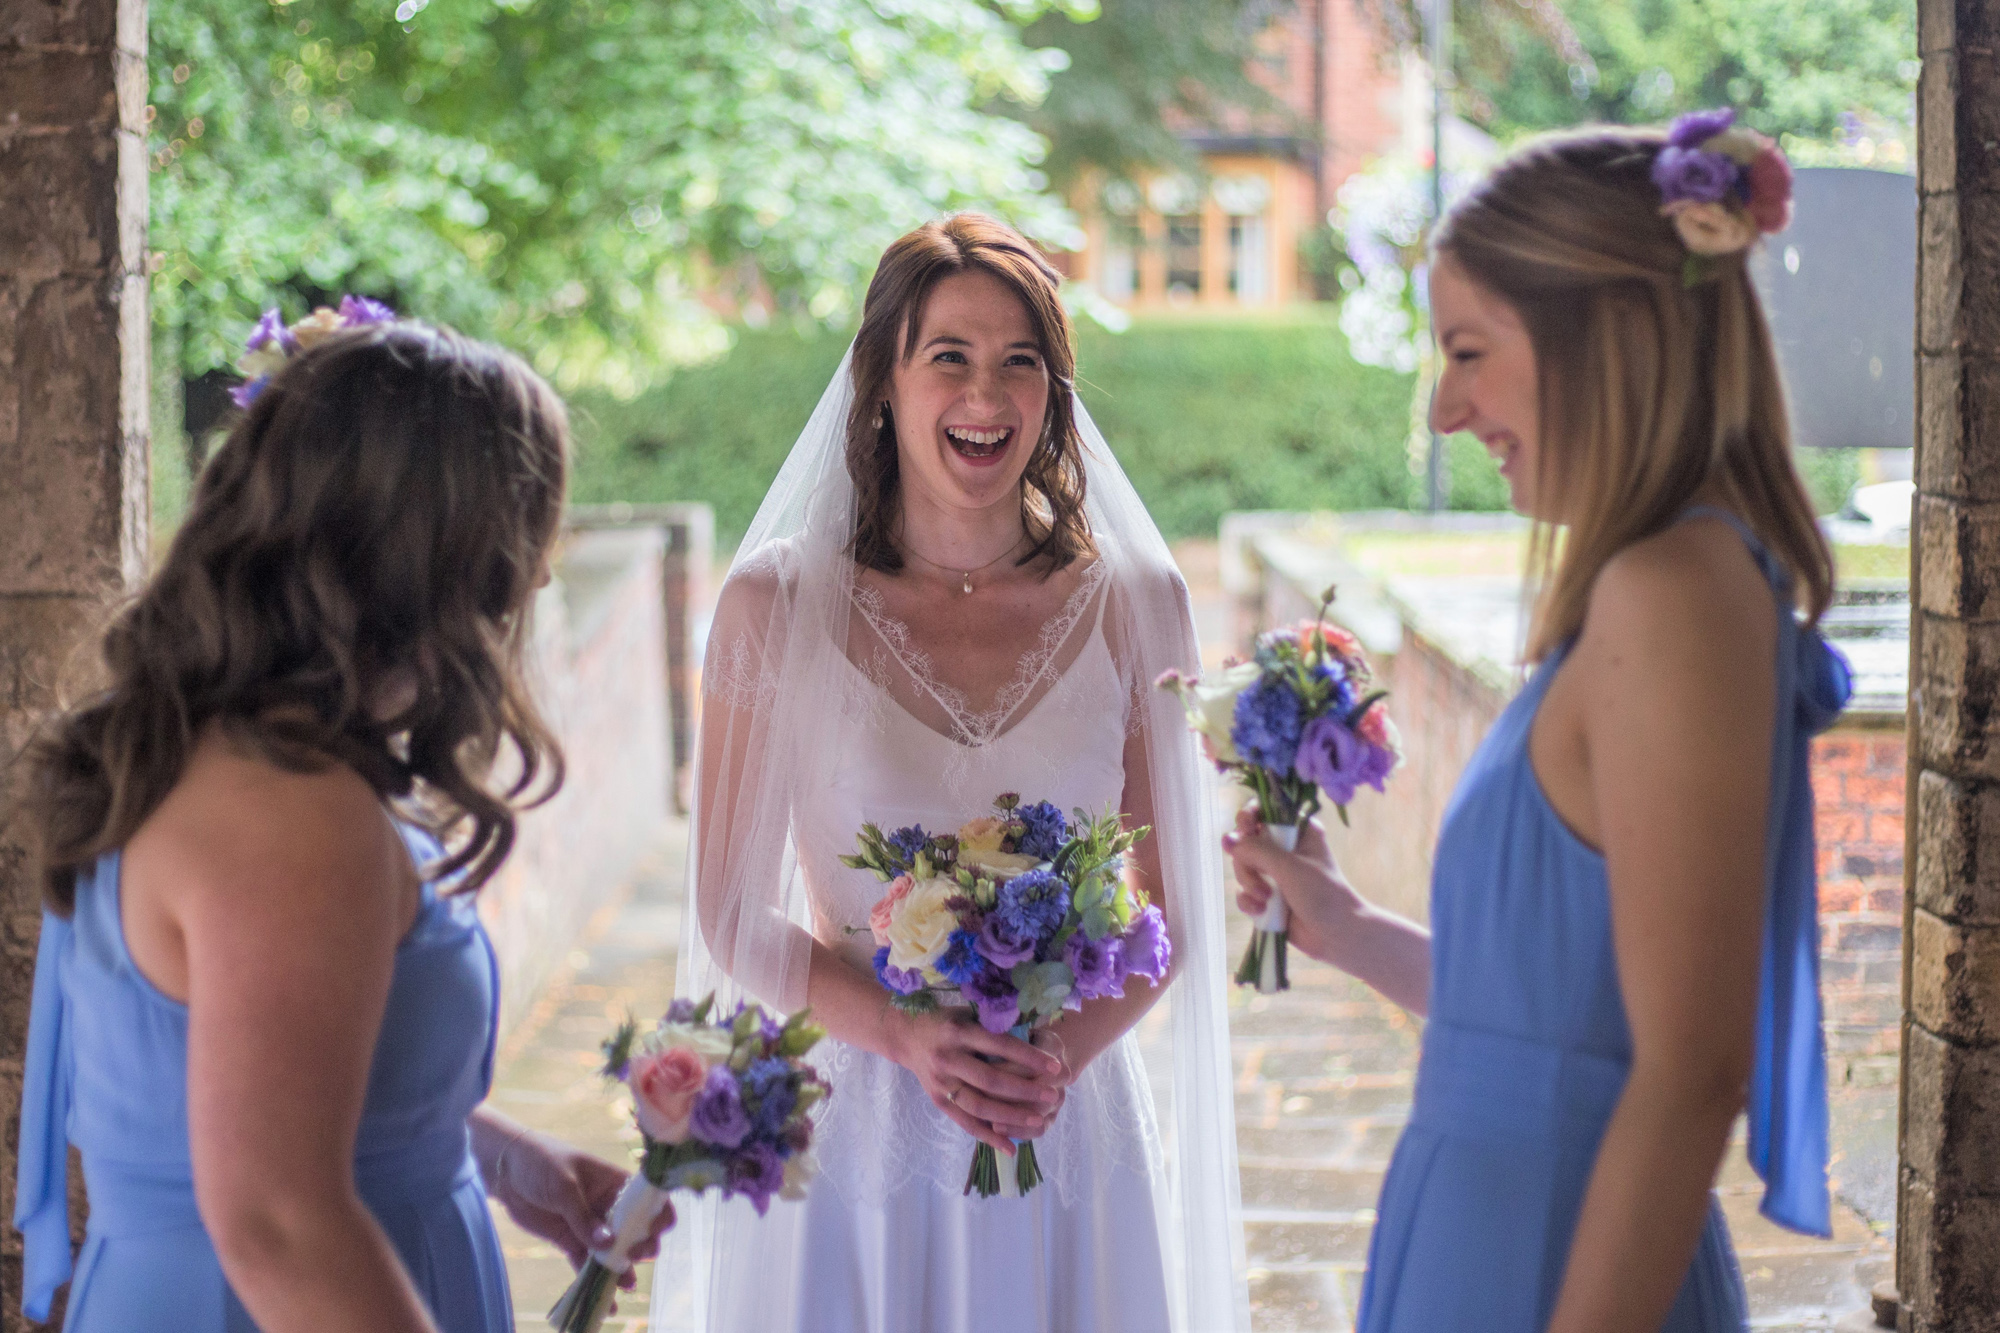 Paula-Lilac-Lace-Top-Bluebell-Flared-Silk-Dress-Church-Barn-Wedding-Kate-Beaumont-Sheffield-10.jpg